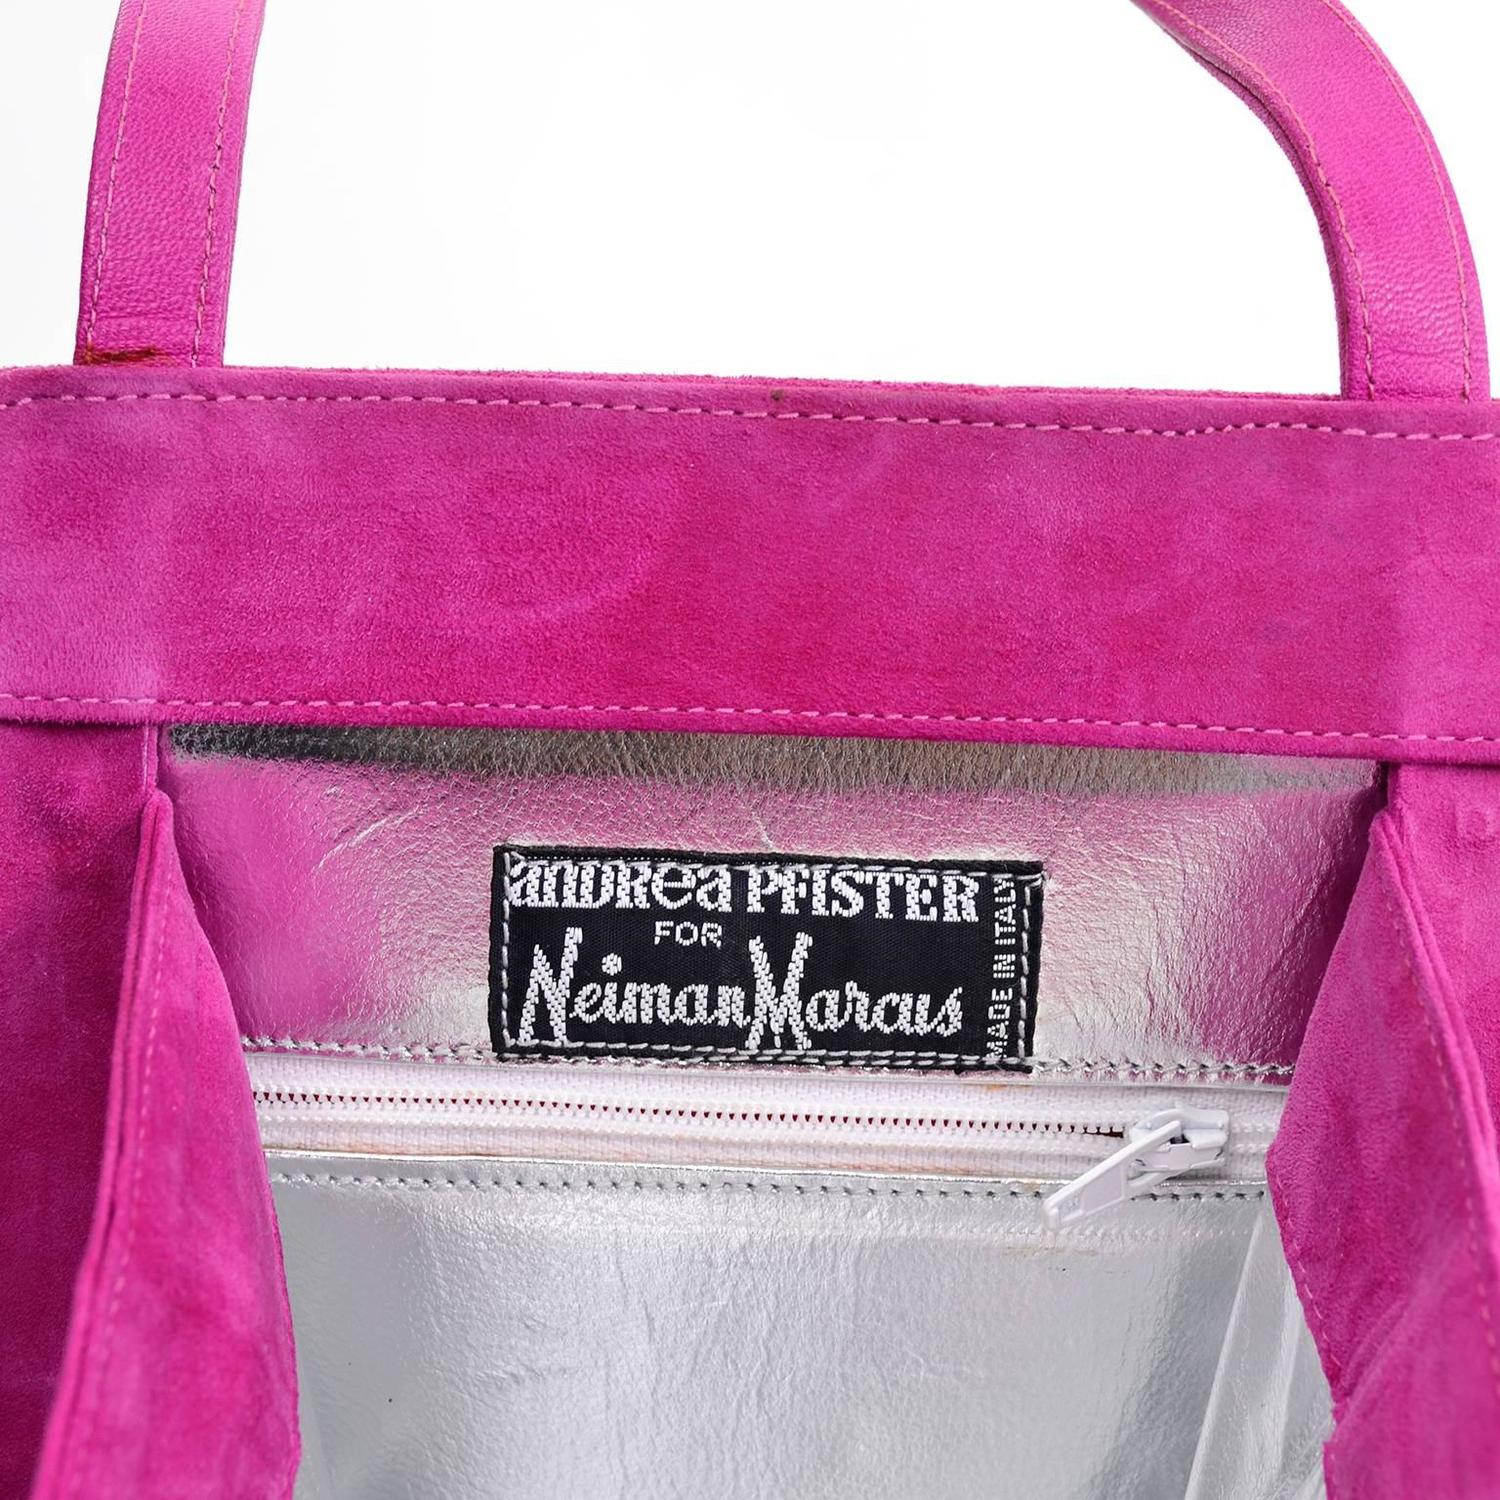 Andrea Pfister Handbag In Pink Suede With Silver Leather Lining & Black Trim laFTpjsf